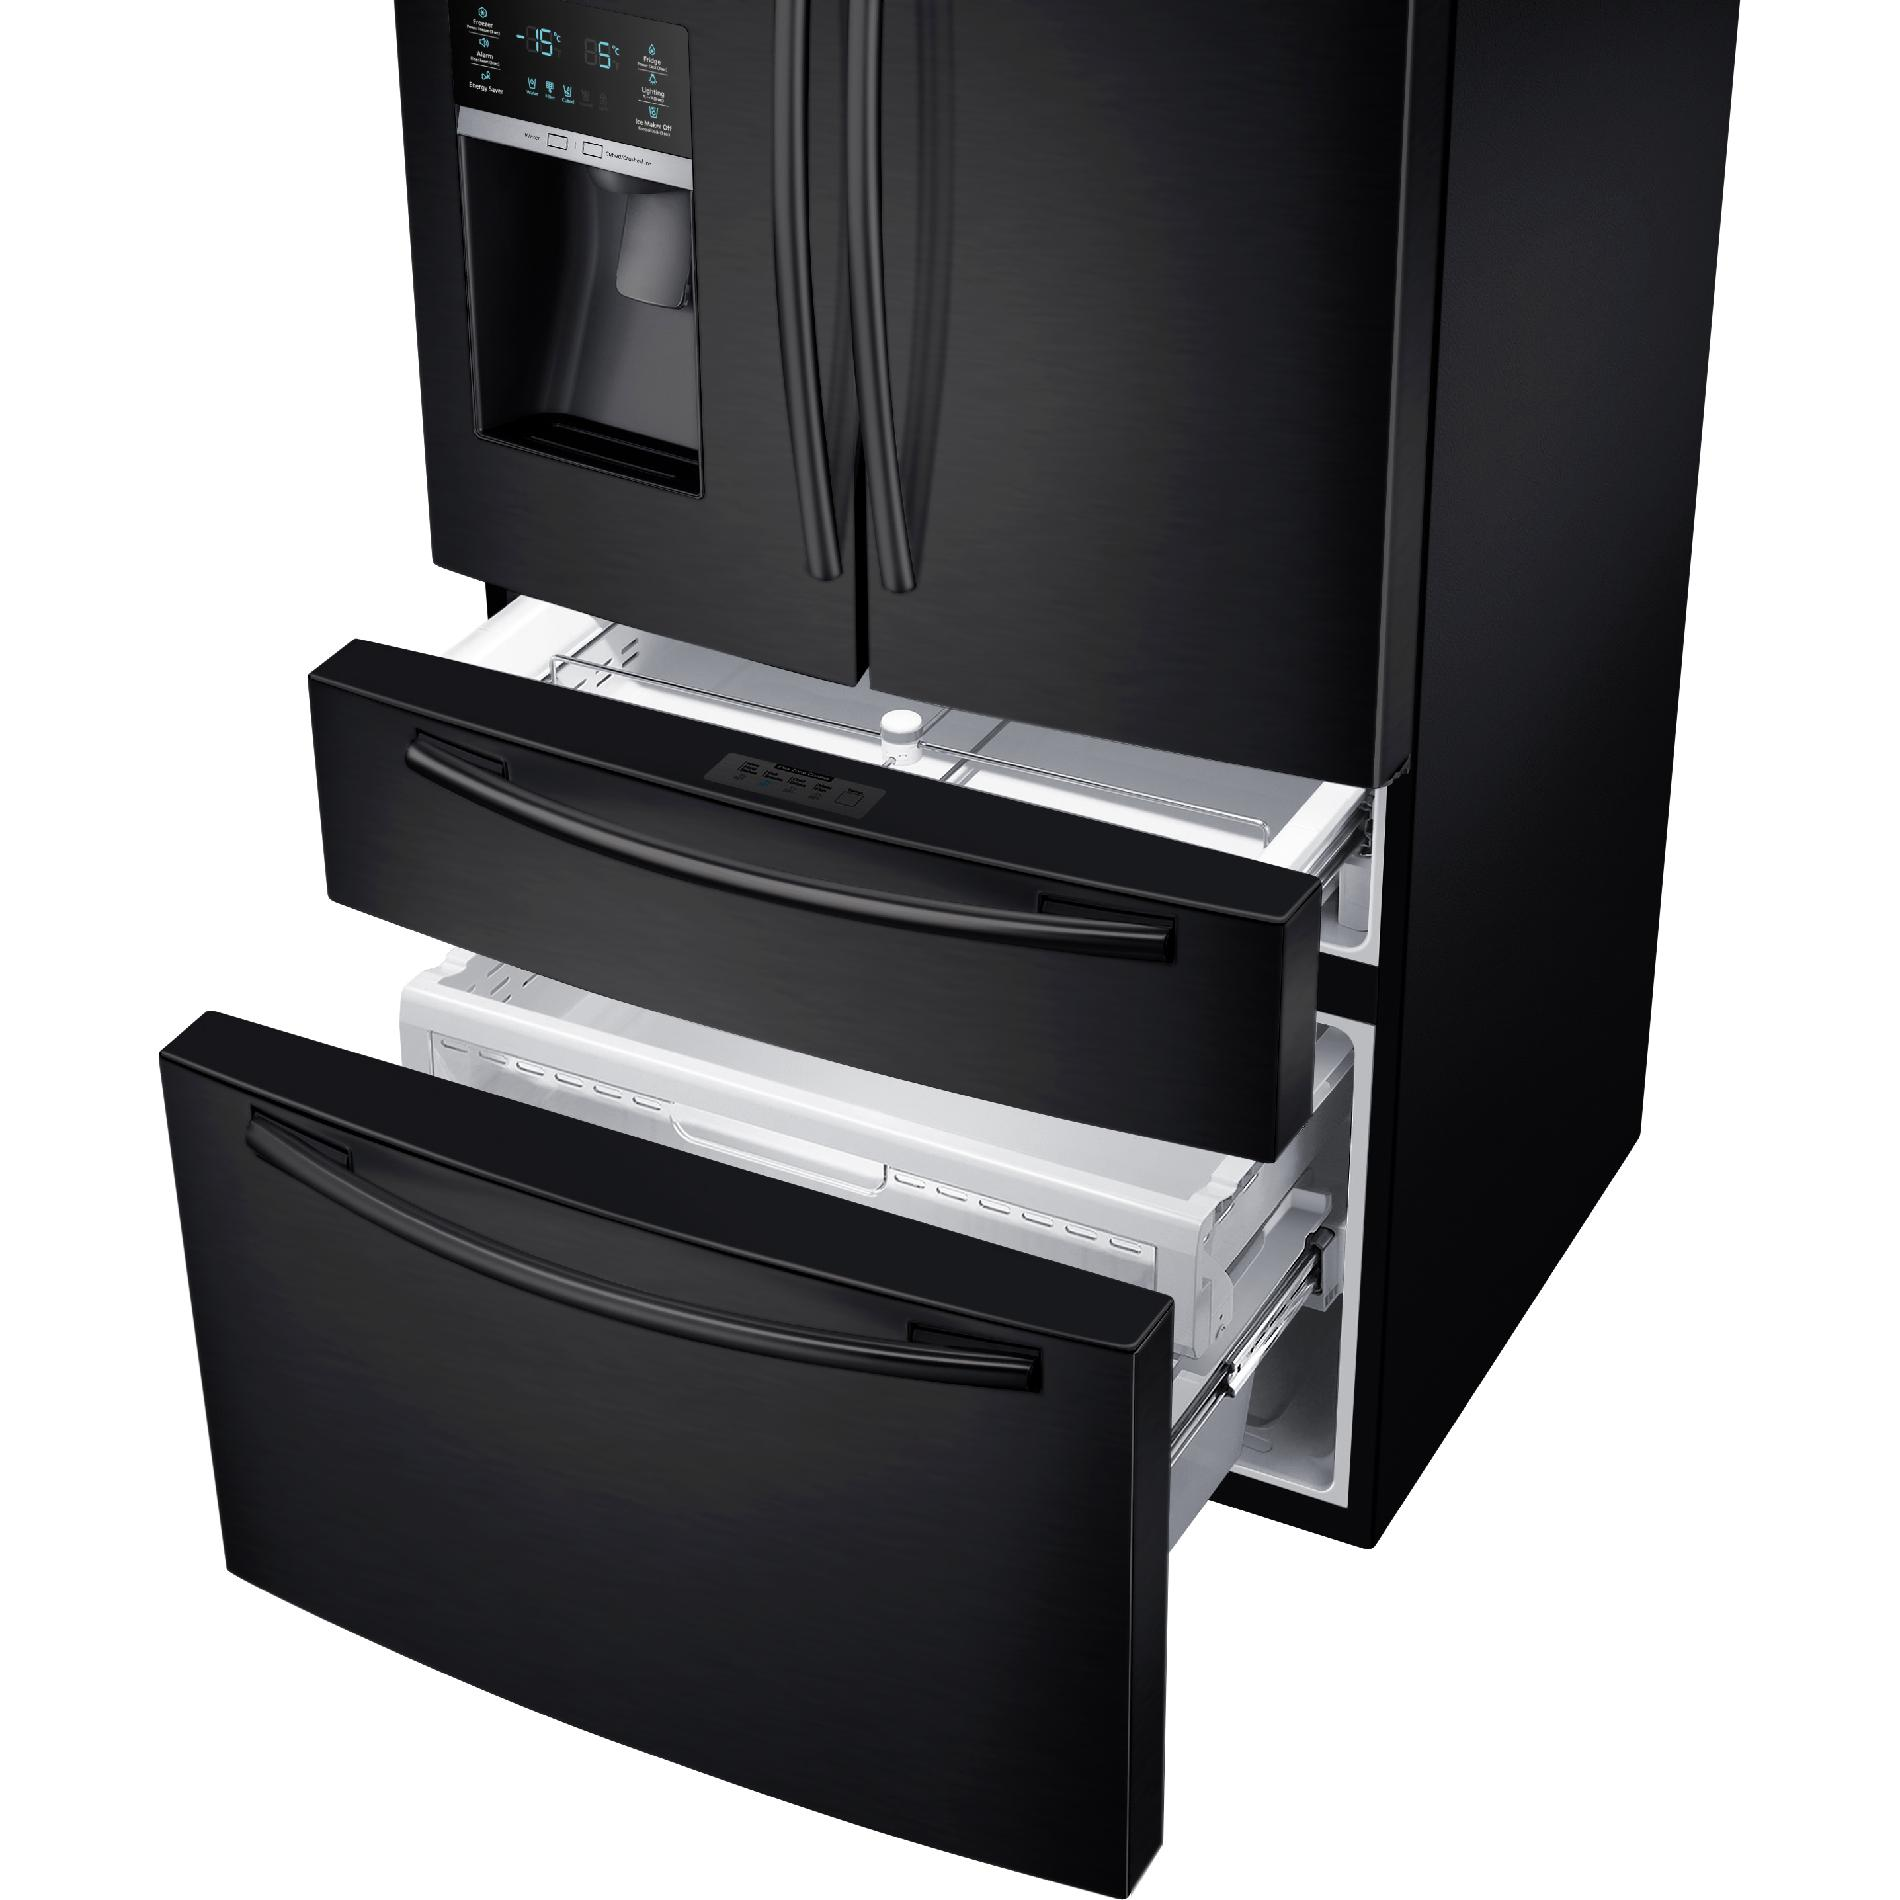 Samsung 25 cu. ft. 4-Door French Door Refrigerator - Black